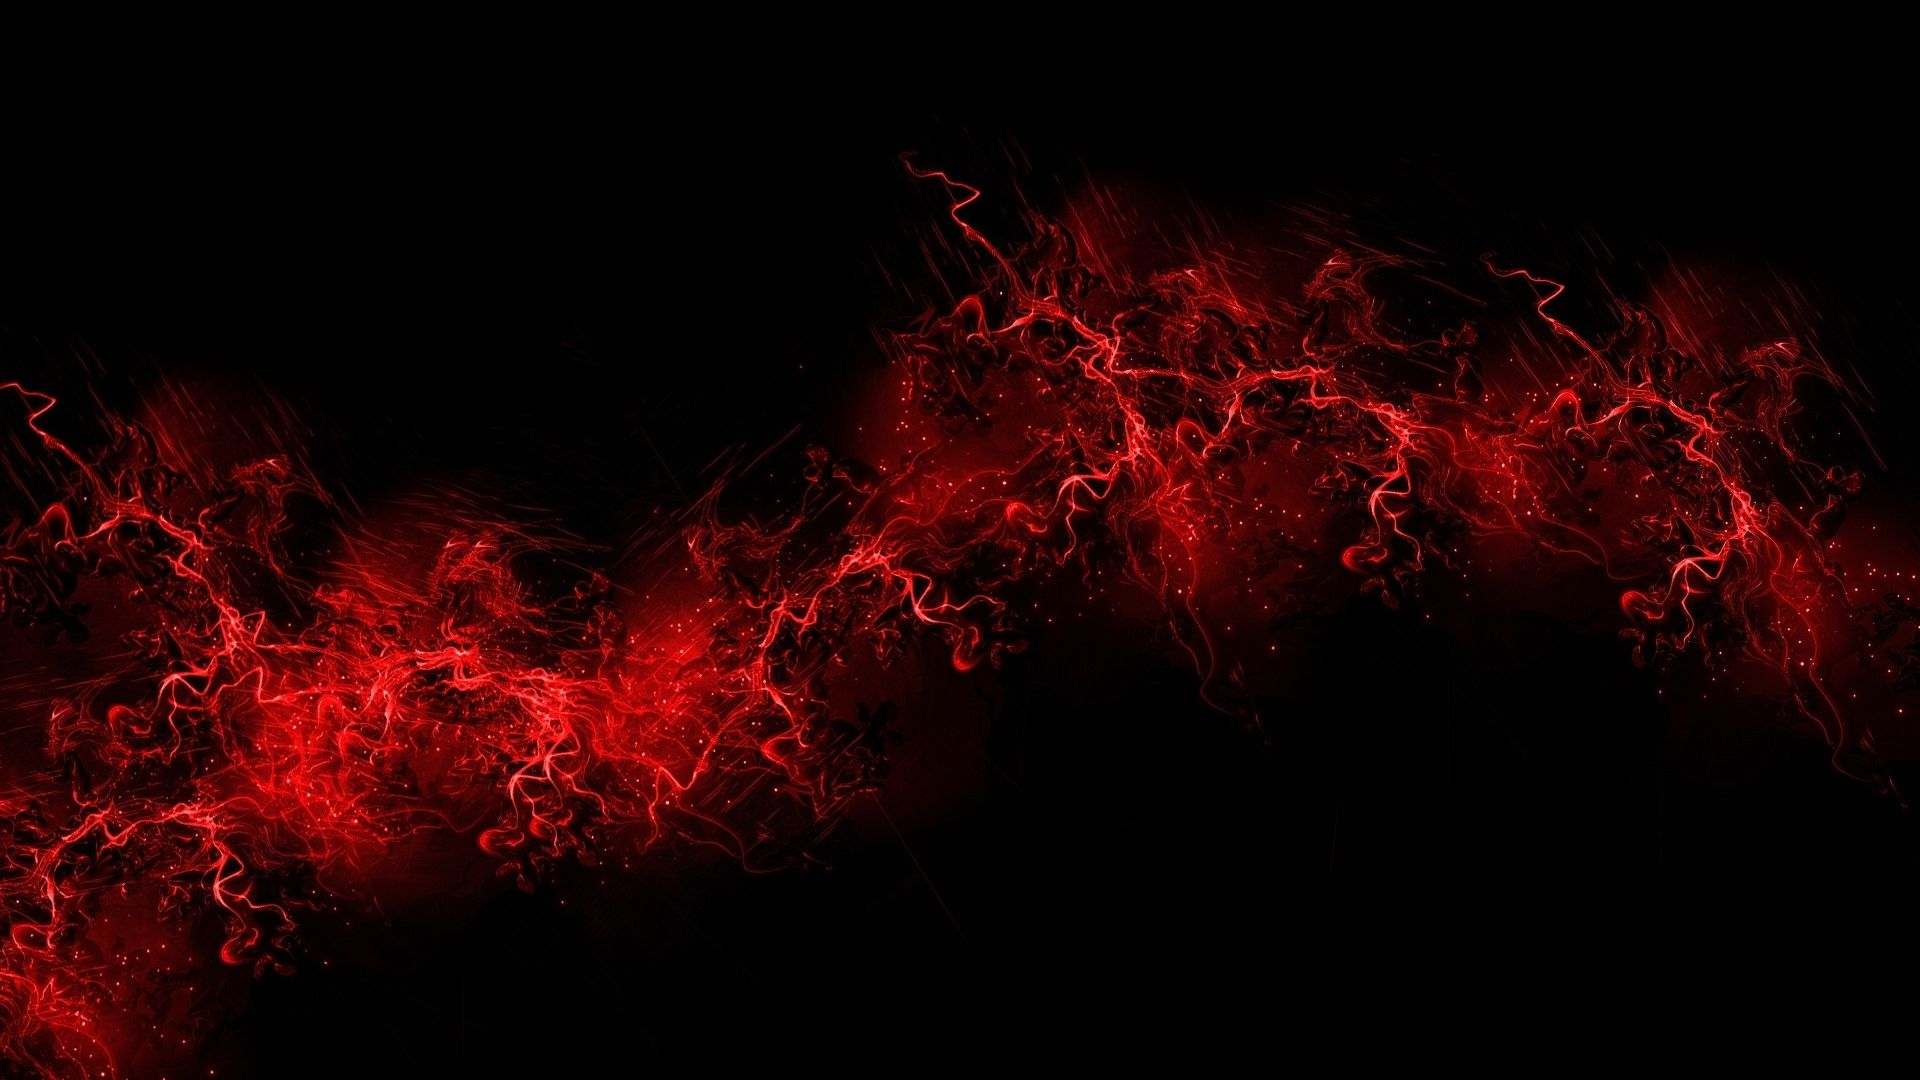 Hd Background Images Red And Black Full Hd 1080p Abstract